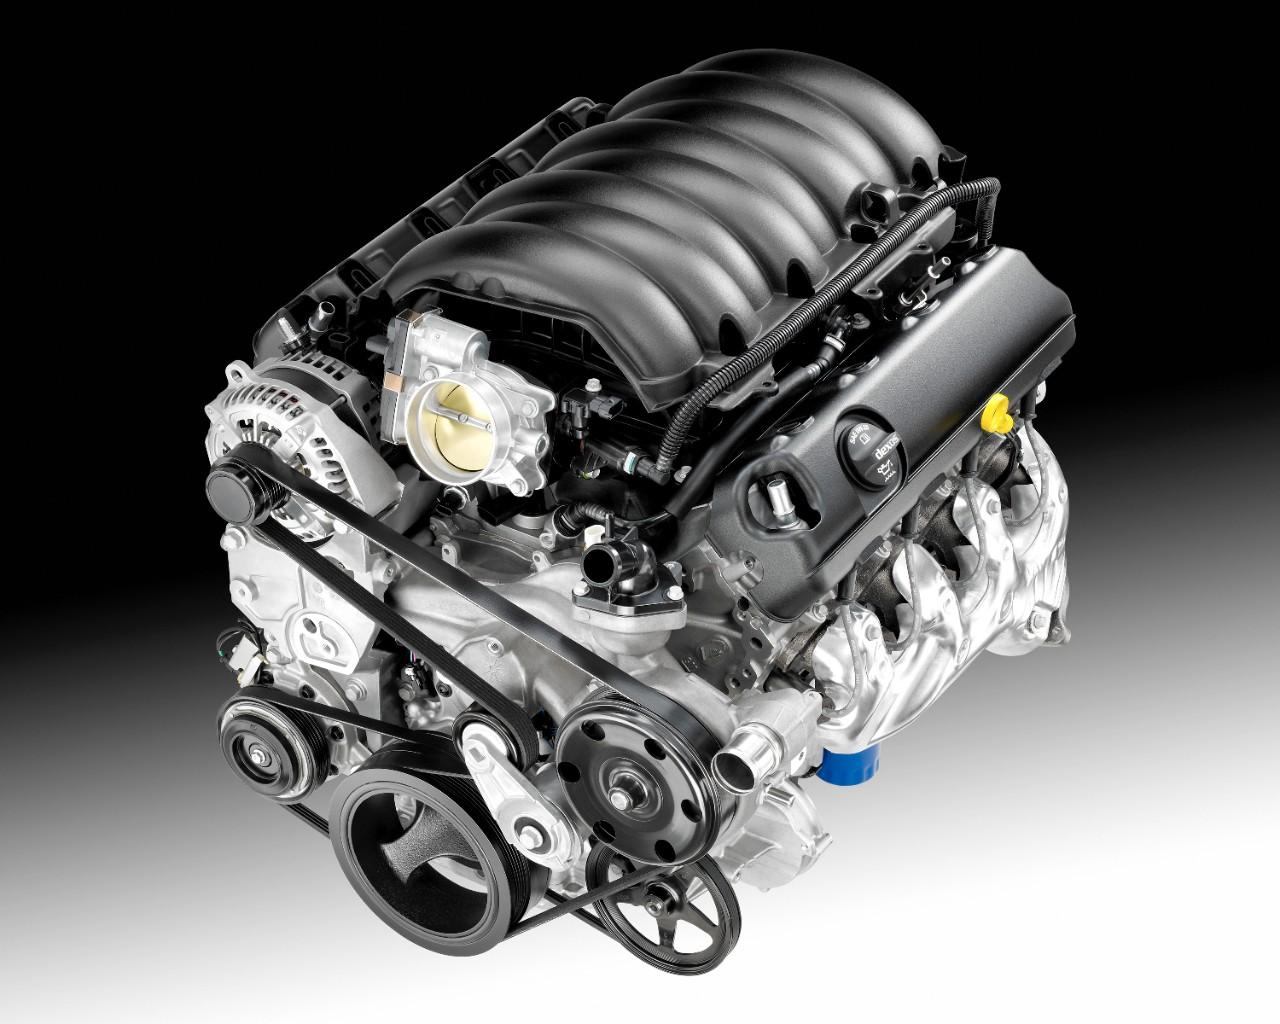 GM 5.3 Liter V8 Vortec engine